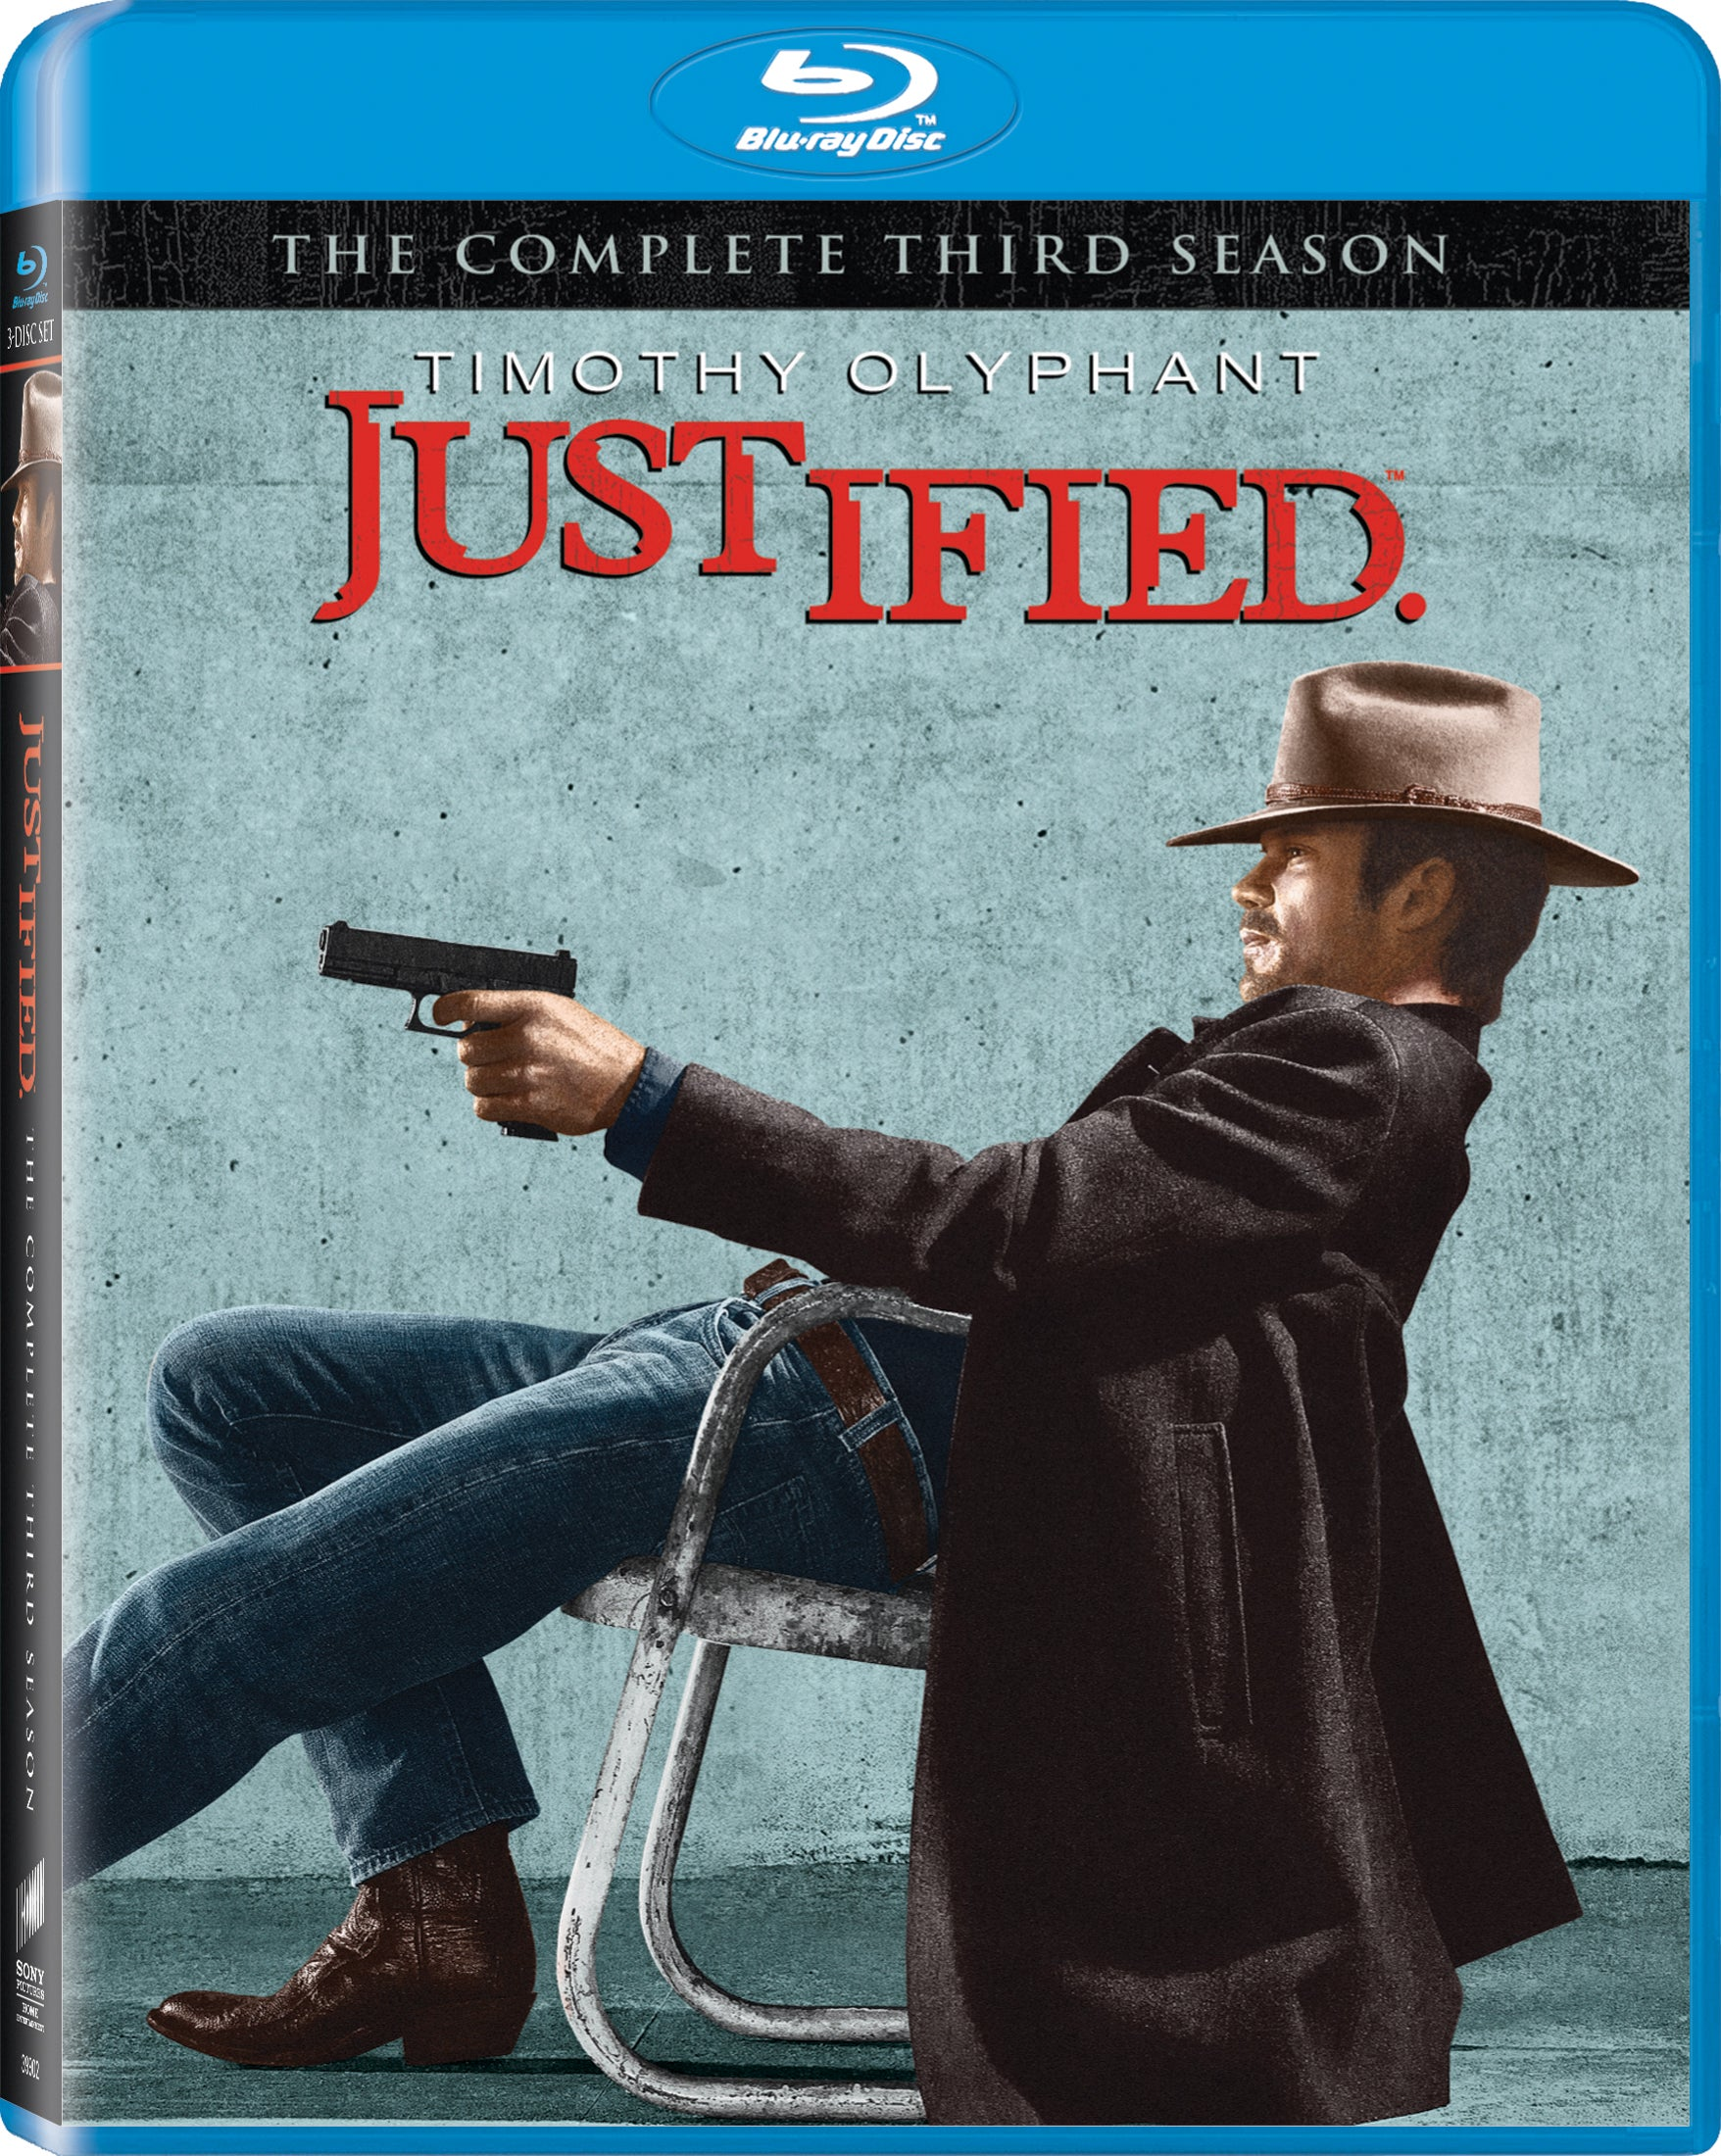 Justified: The Complete Third Season (Blu-ray Disc)